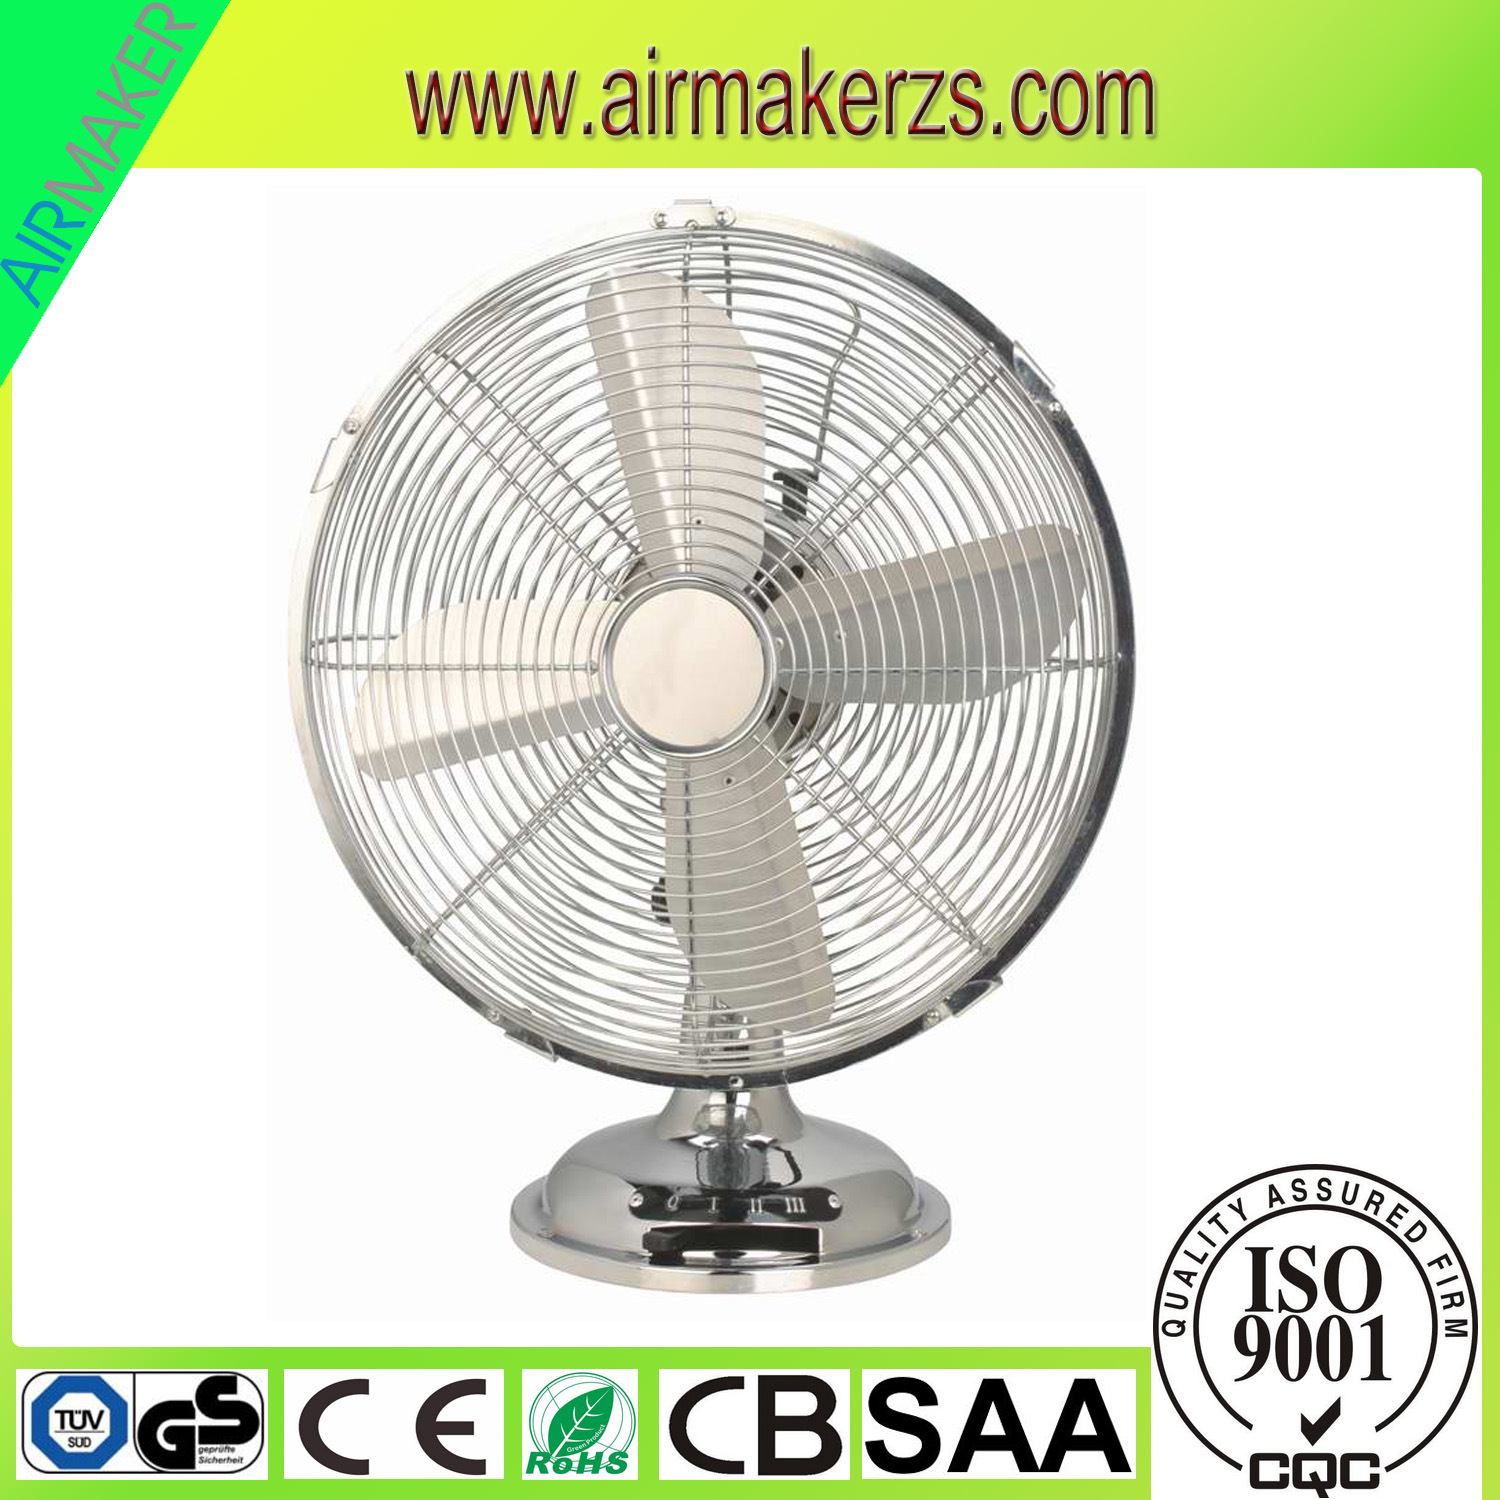 12 Retro Elegant Design Metal Desk Fan With Saa Cb Gs